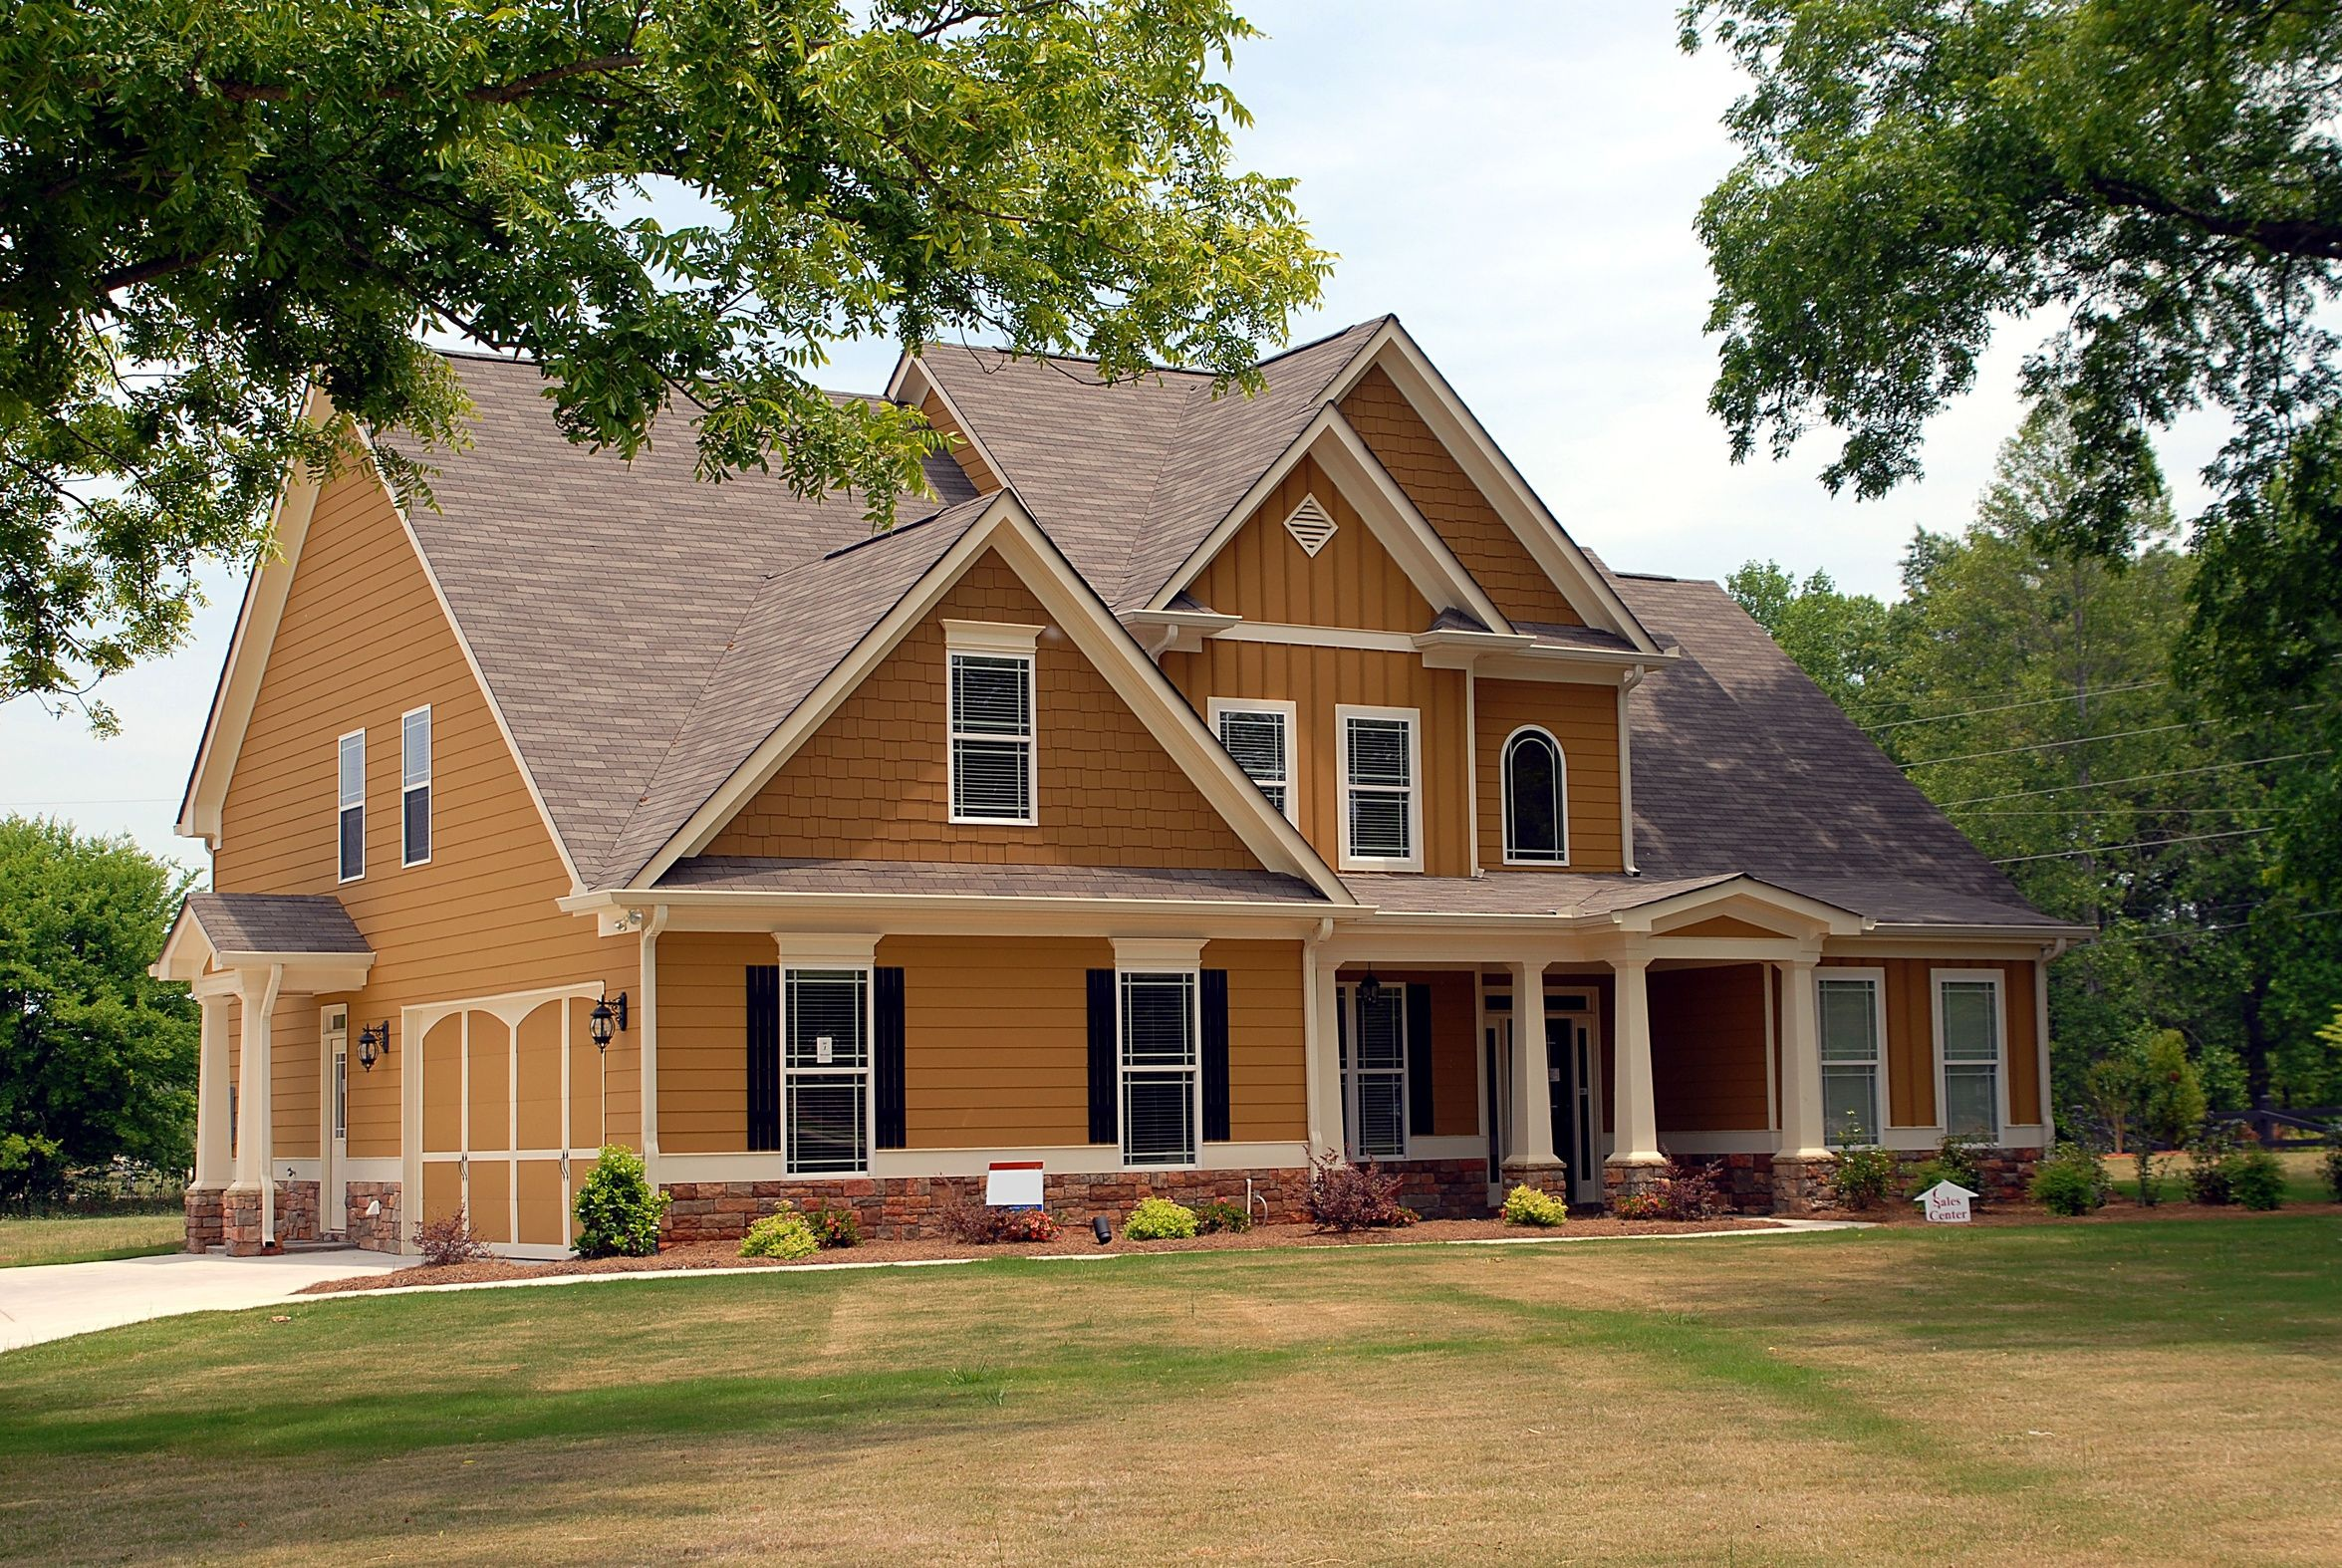 Brown Exterior House Paint Colors Looking For Professional House Painting  In Stamford CT?